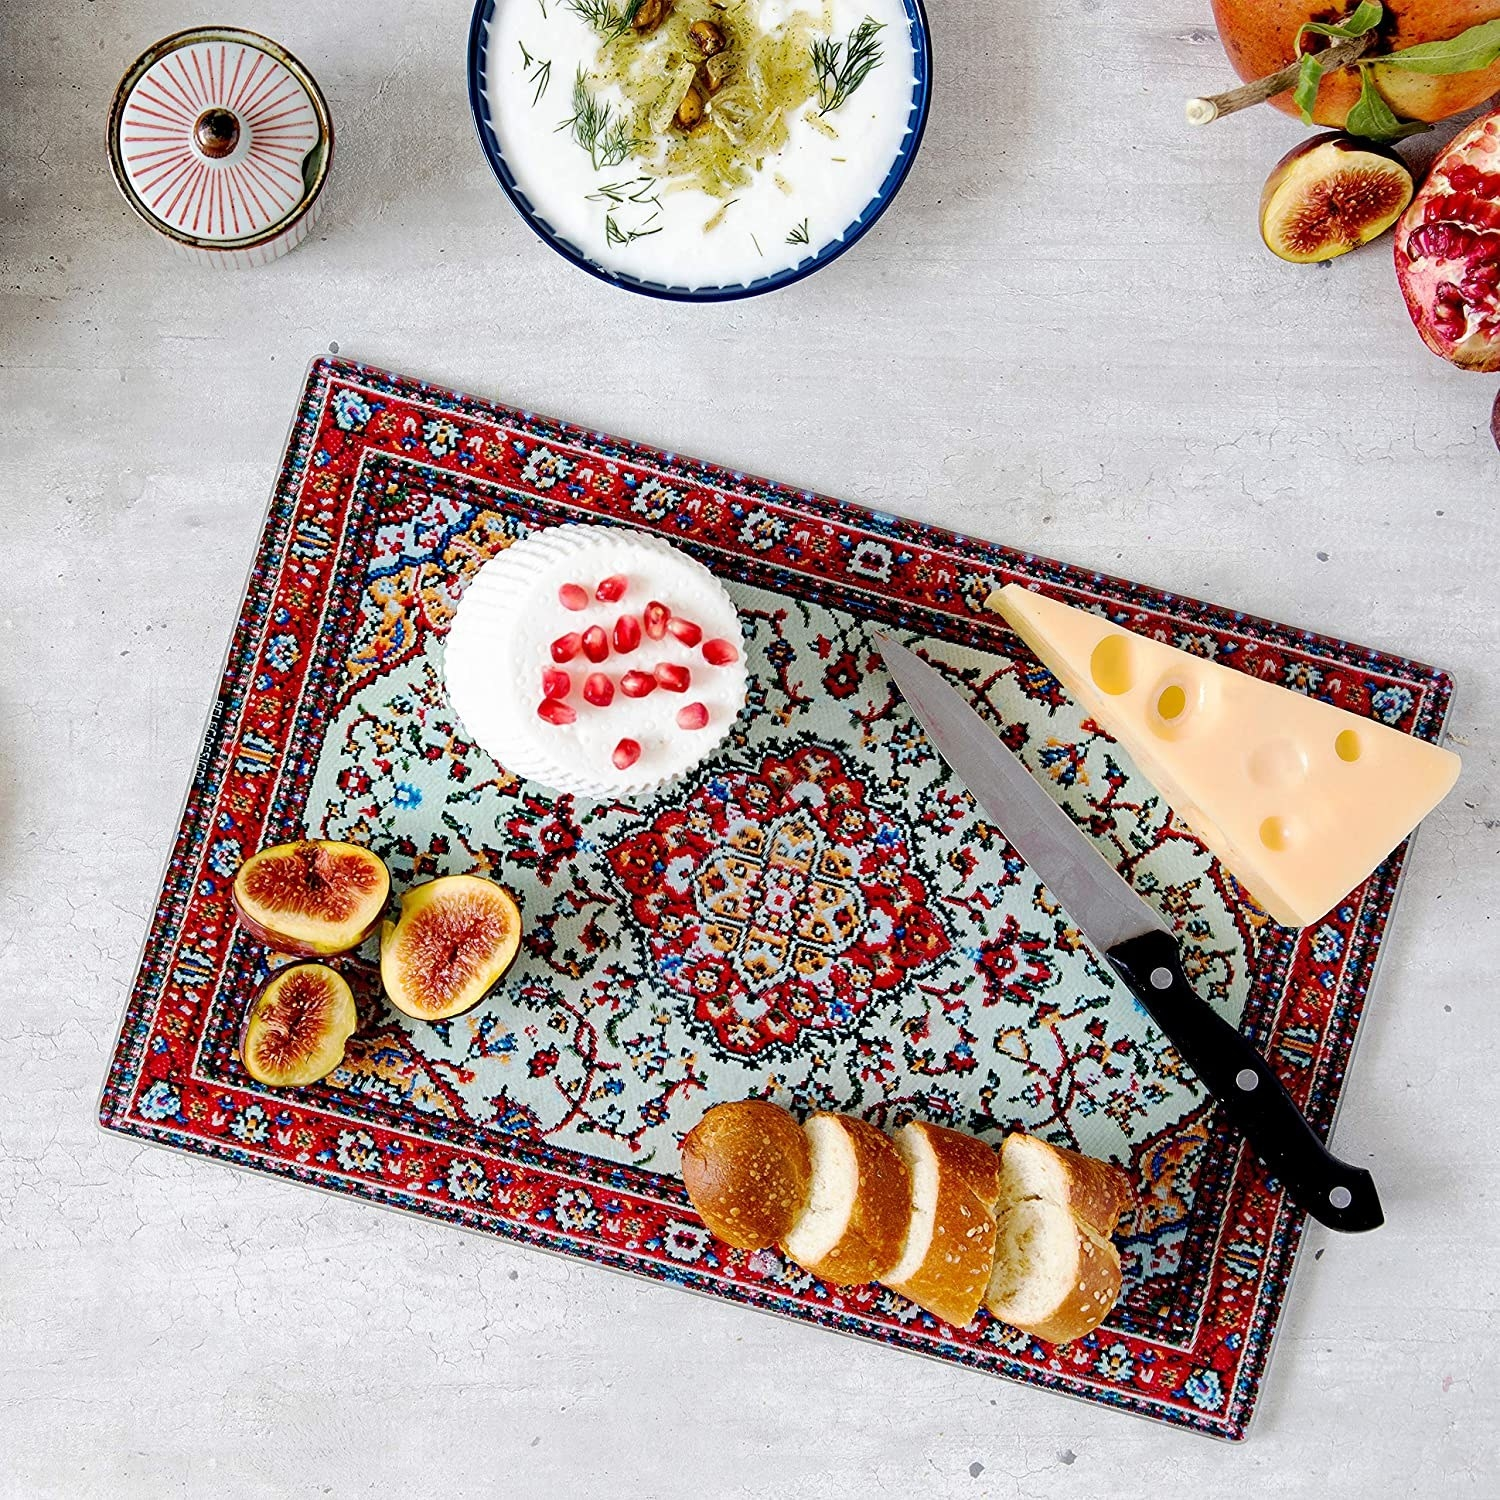 the red and blue cutting board with cheese and figs on it